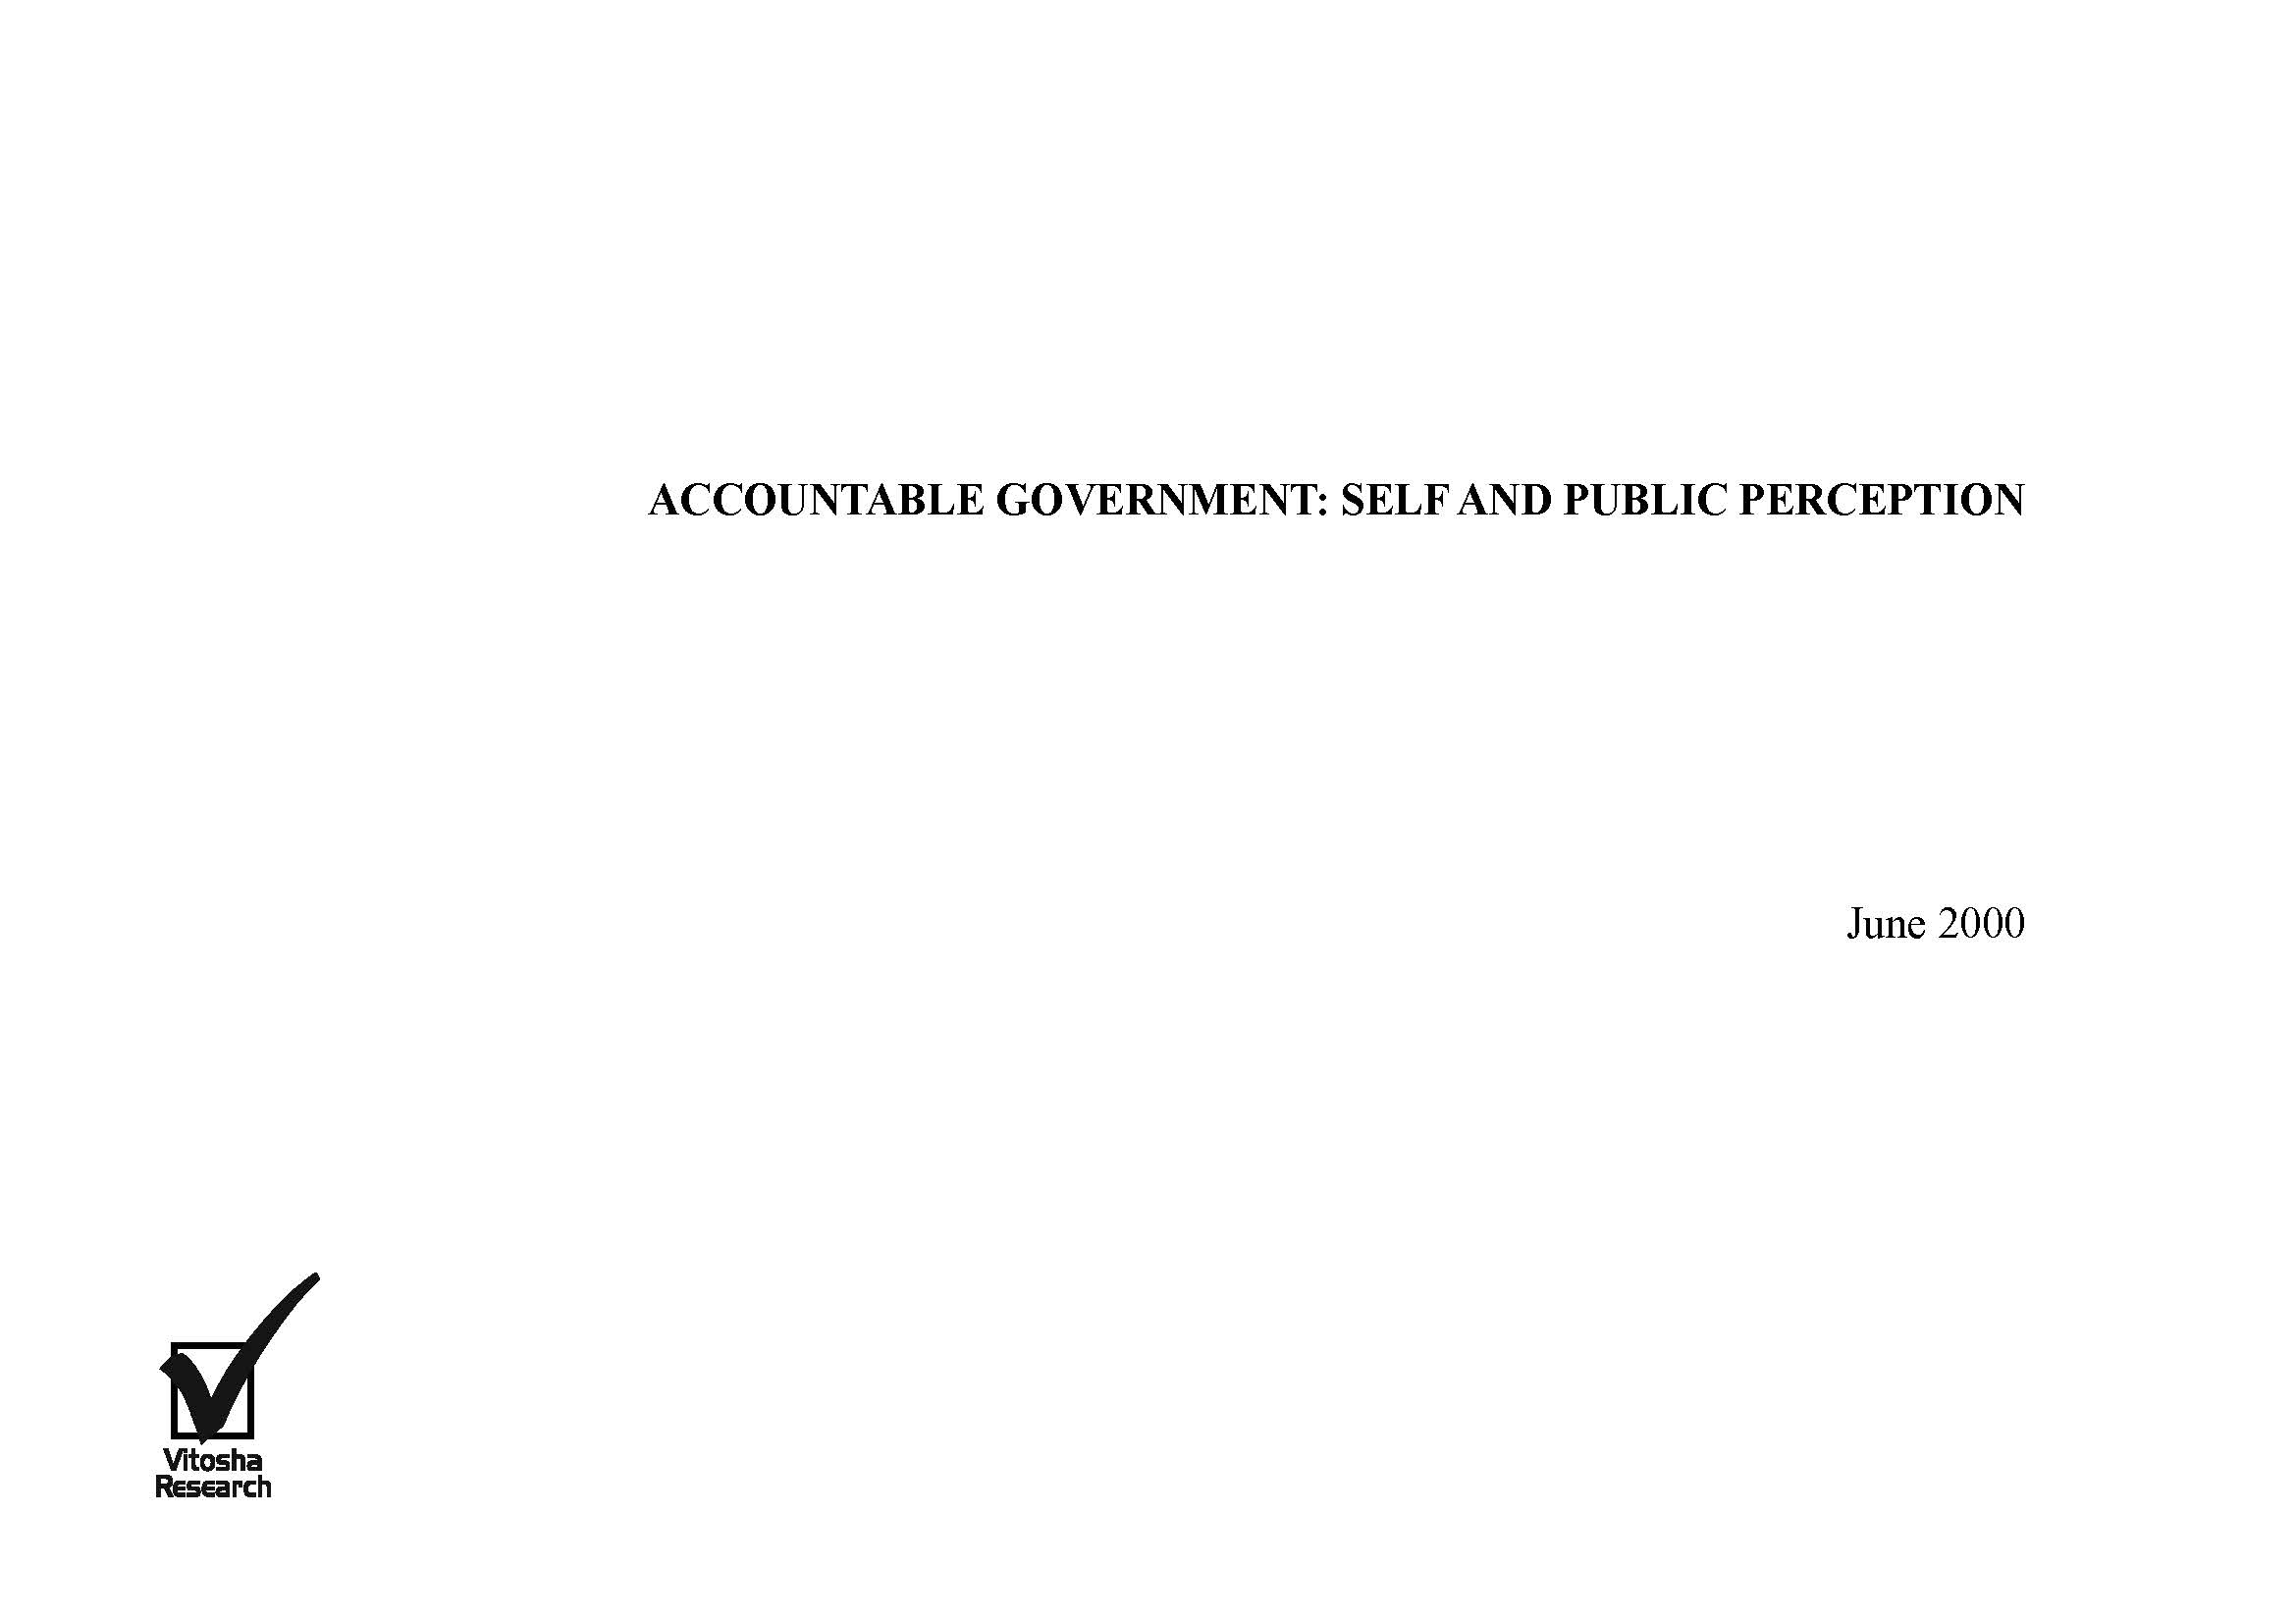 ACCOUNTABLE GOVERNMENT: SELF AND PUBLIC PERCEPTION Cover Image